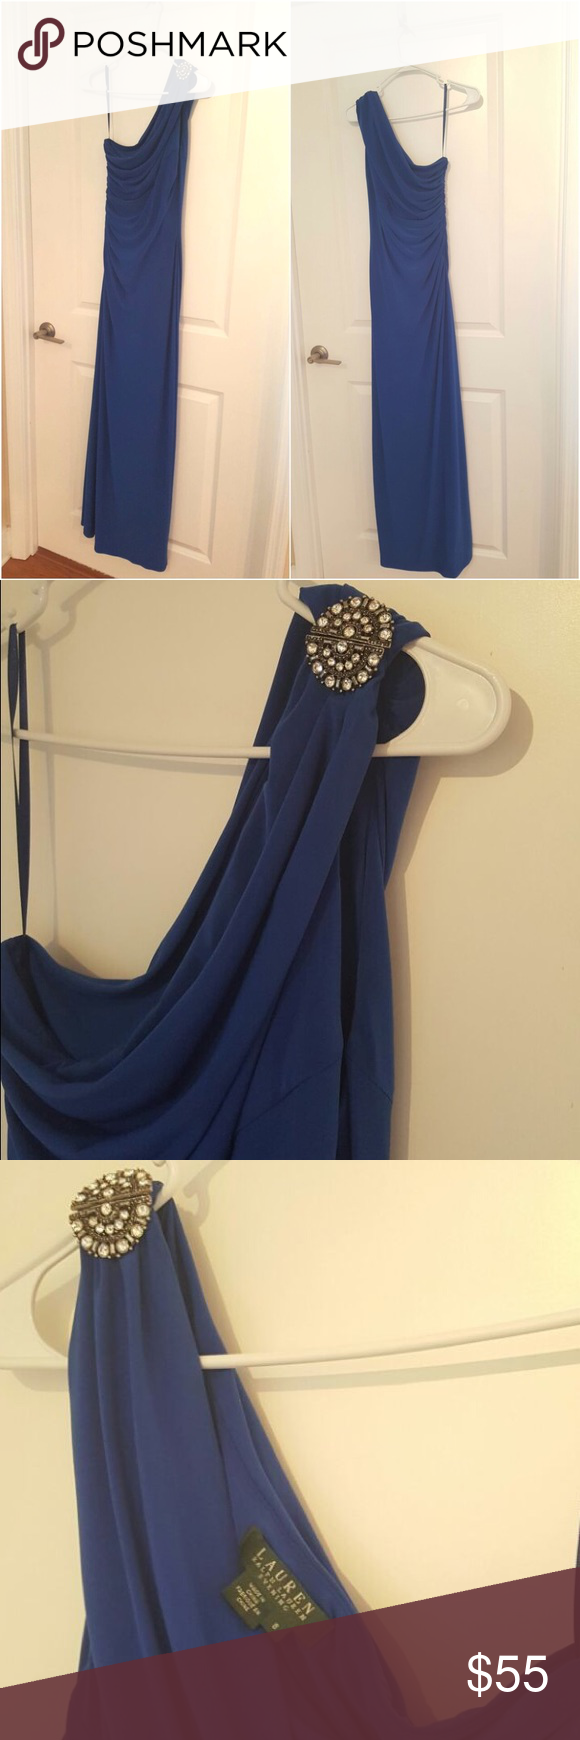 Ralph Lauren evening dress Off the shoulder embellished blue dress. I wore this once to my friends wedding. Fits so beautifully! Ralph Lauren Dresses One Shoulder